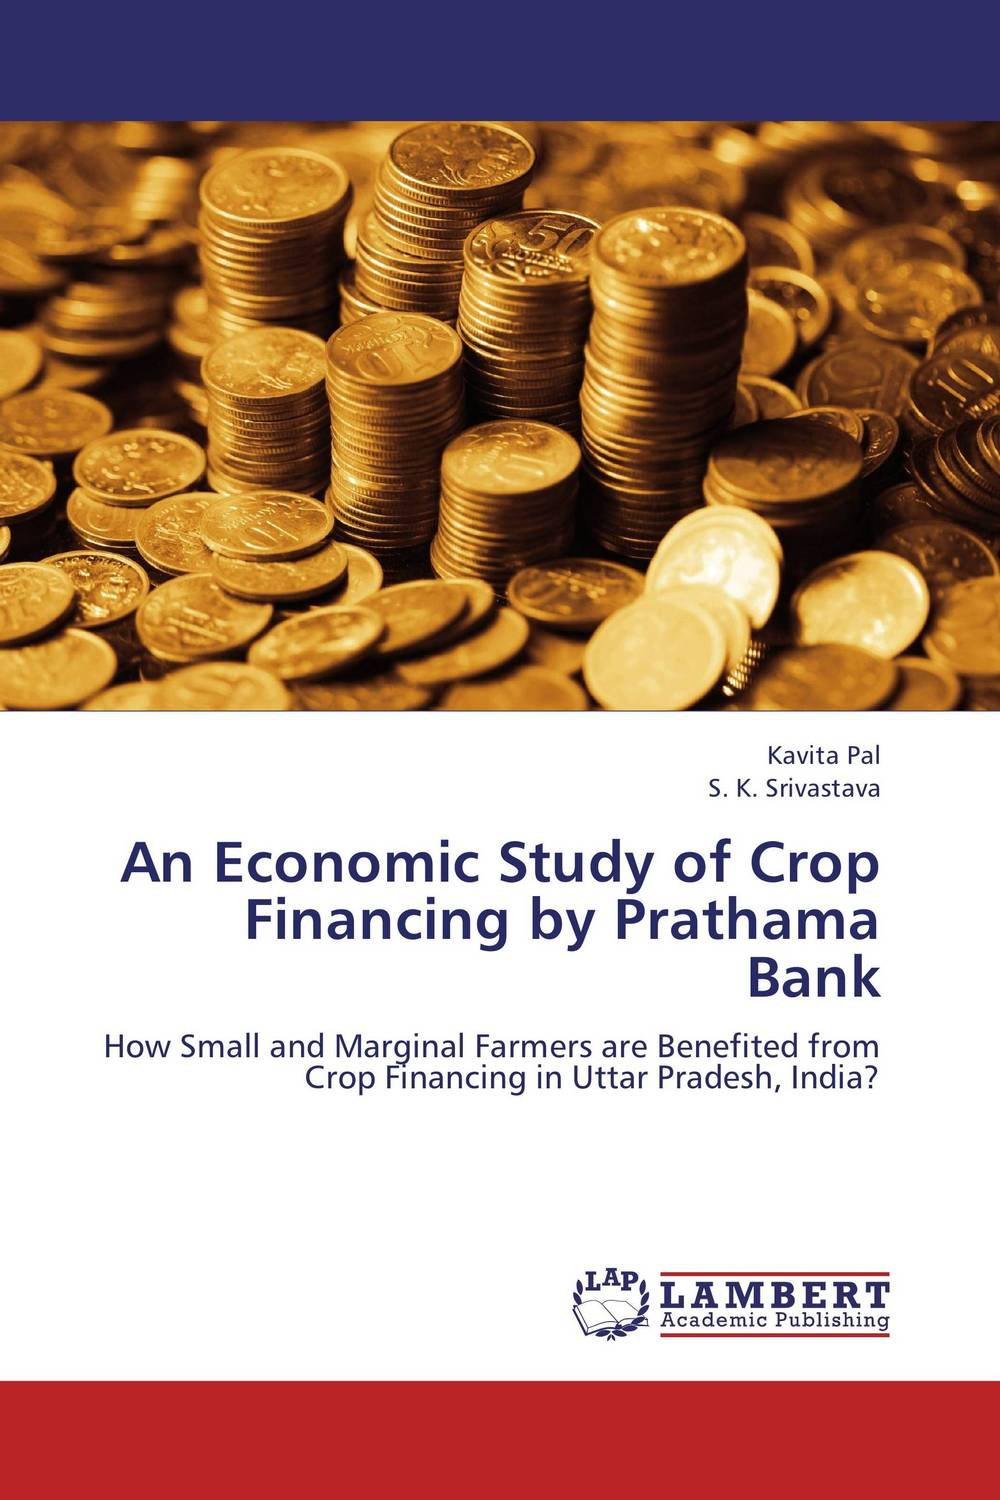 An Economic Study of Crop Financing by Prathama Bank cold storage accessibility and agricultural production by smallholders